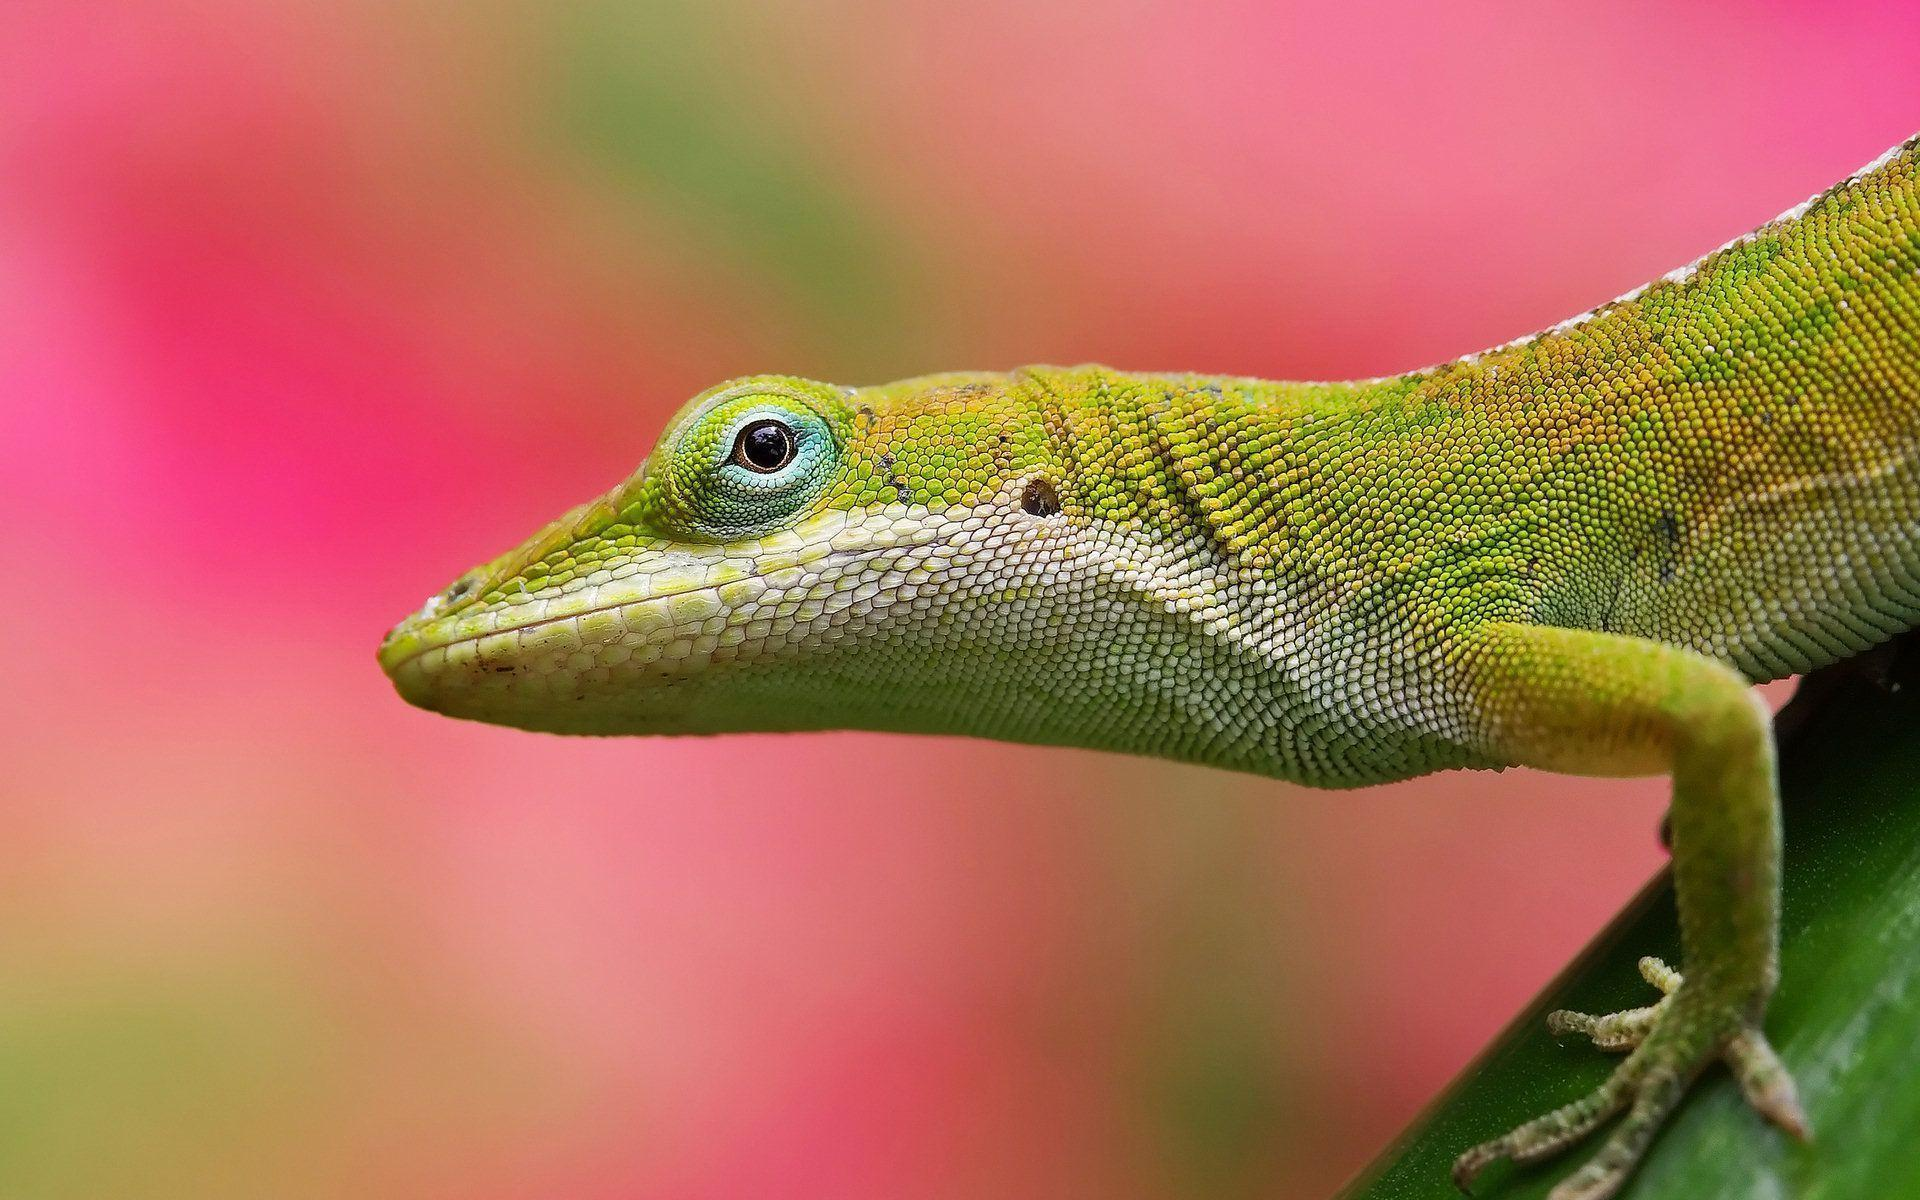 Colorful Lizard Pink Backgrounds